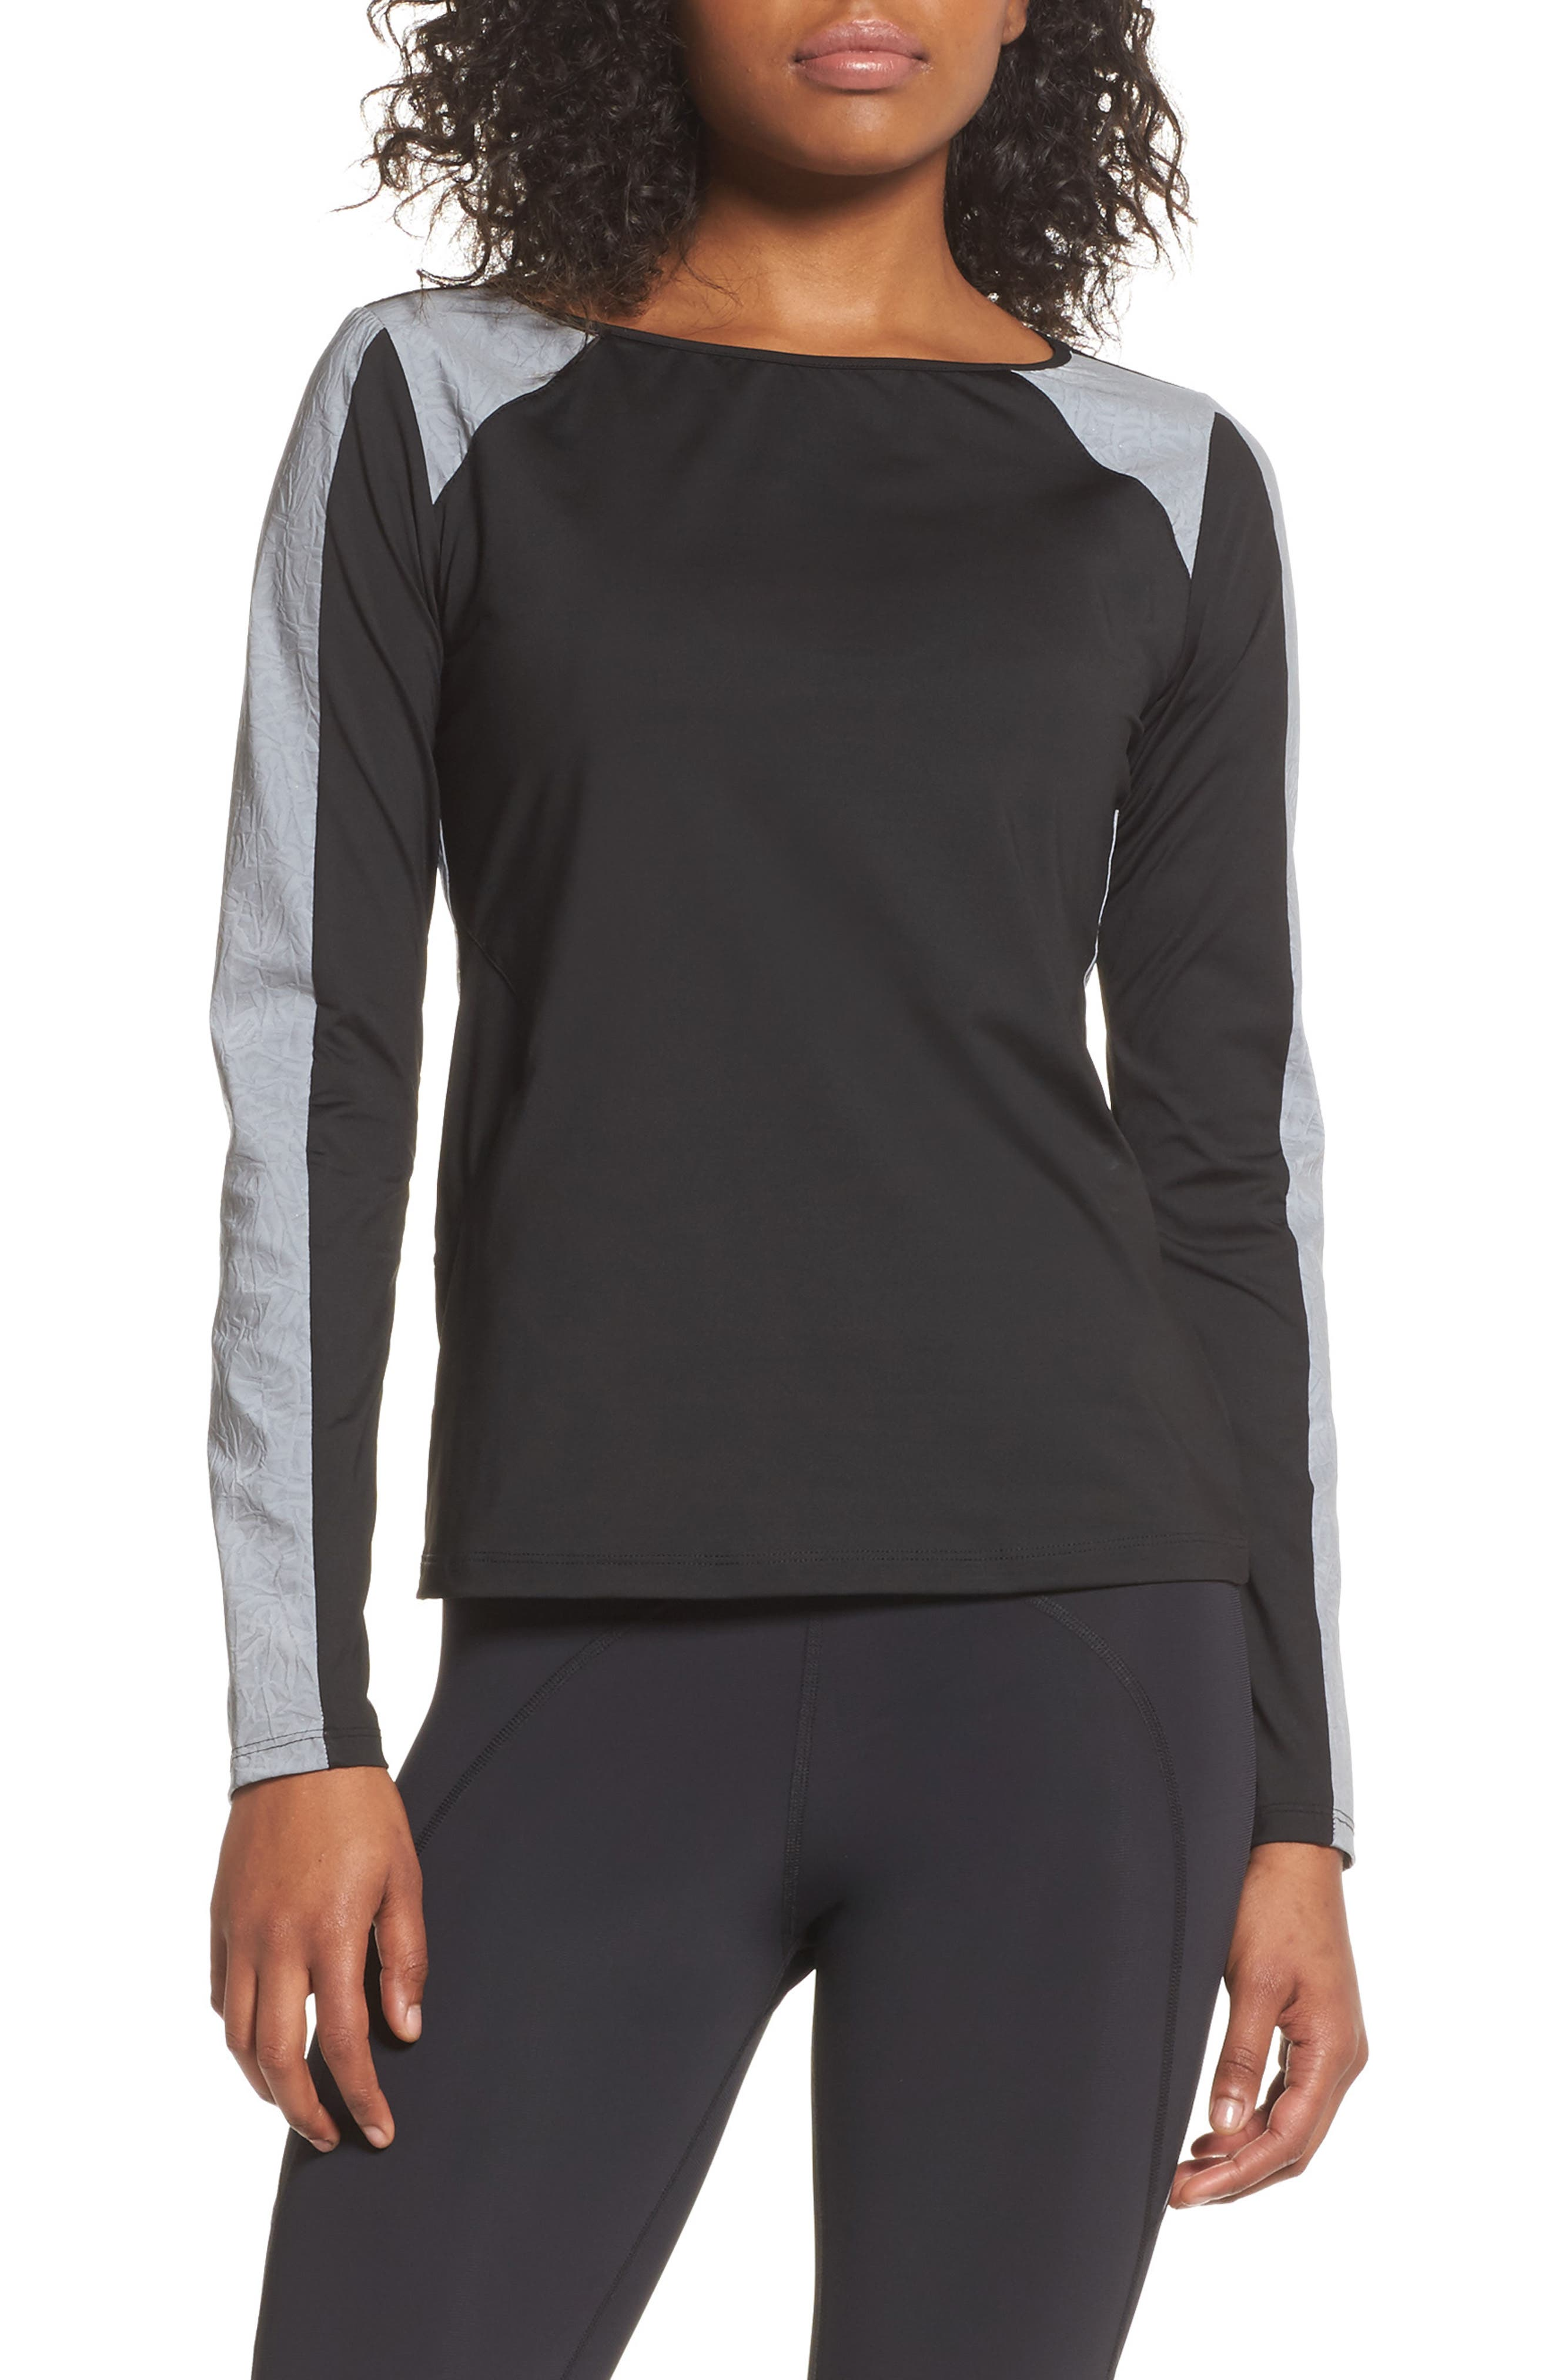 BoomBoom Athletica Reflective Body-Con Long Sleeve Tee,                         Main,                         color, 005